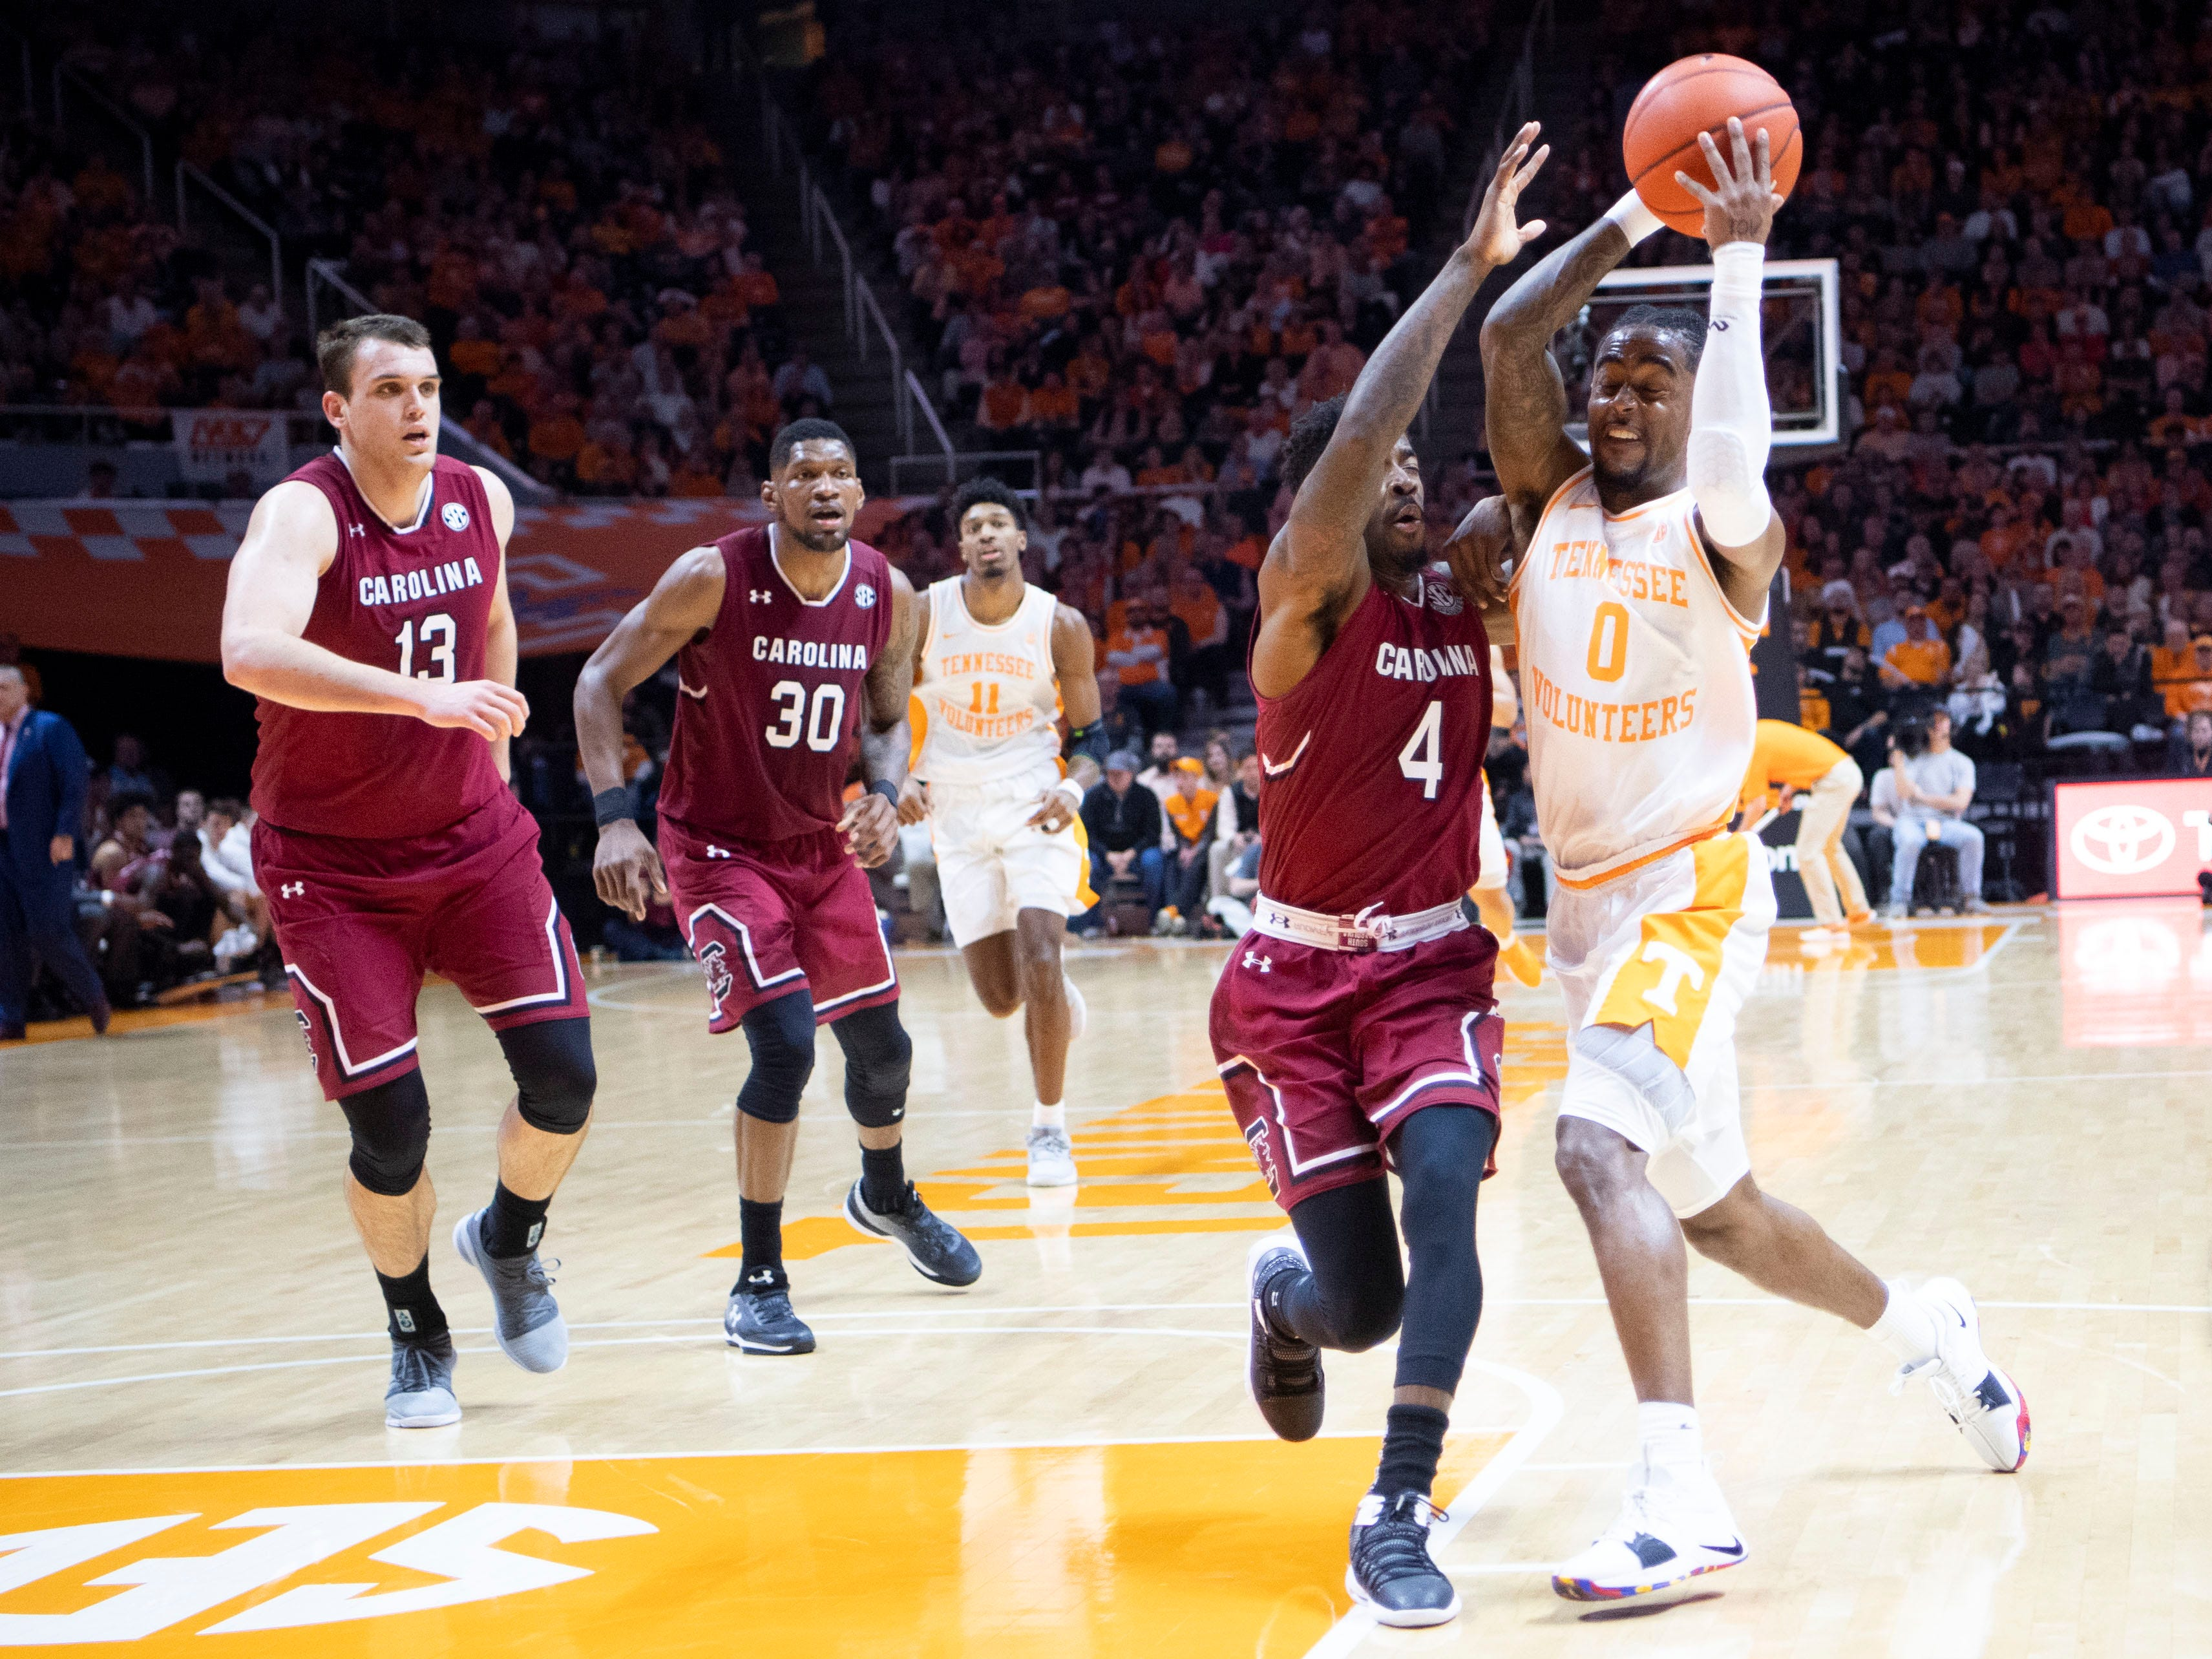 Tennessee's Jordan Bone (0) drives towards the basket while guarded by South Carolina's Tre Campbell (4) on Wednesday, February 13, 2019.